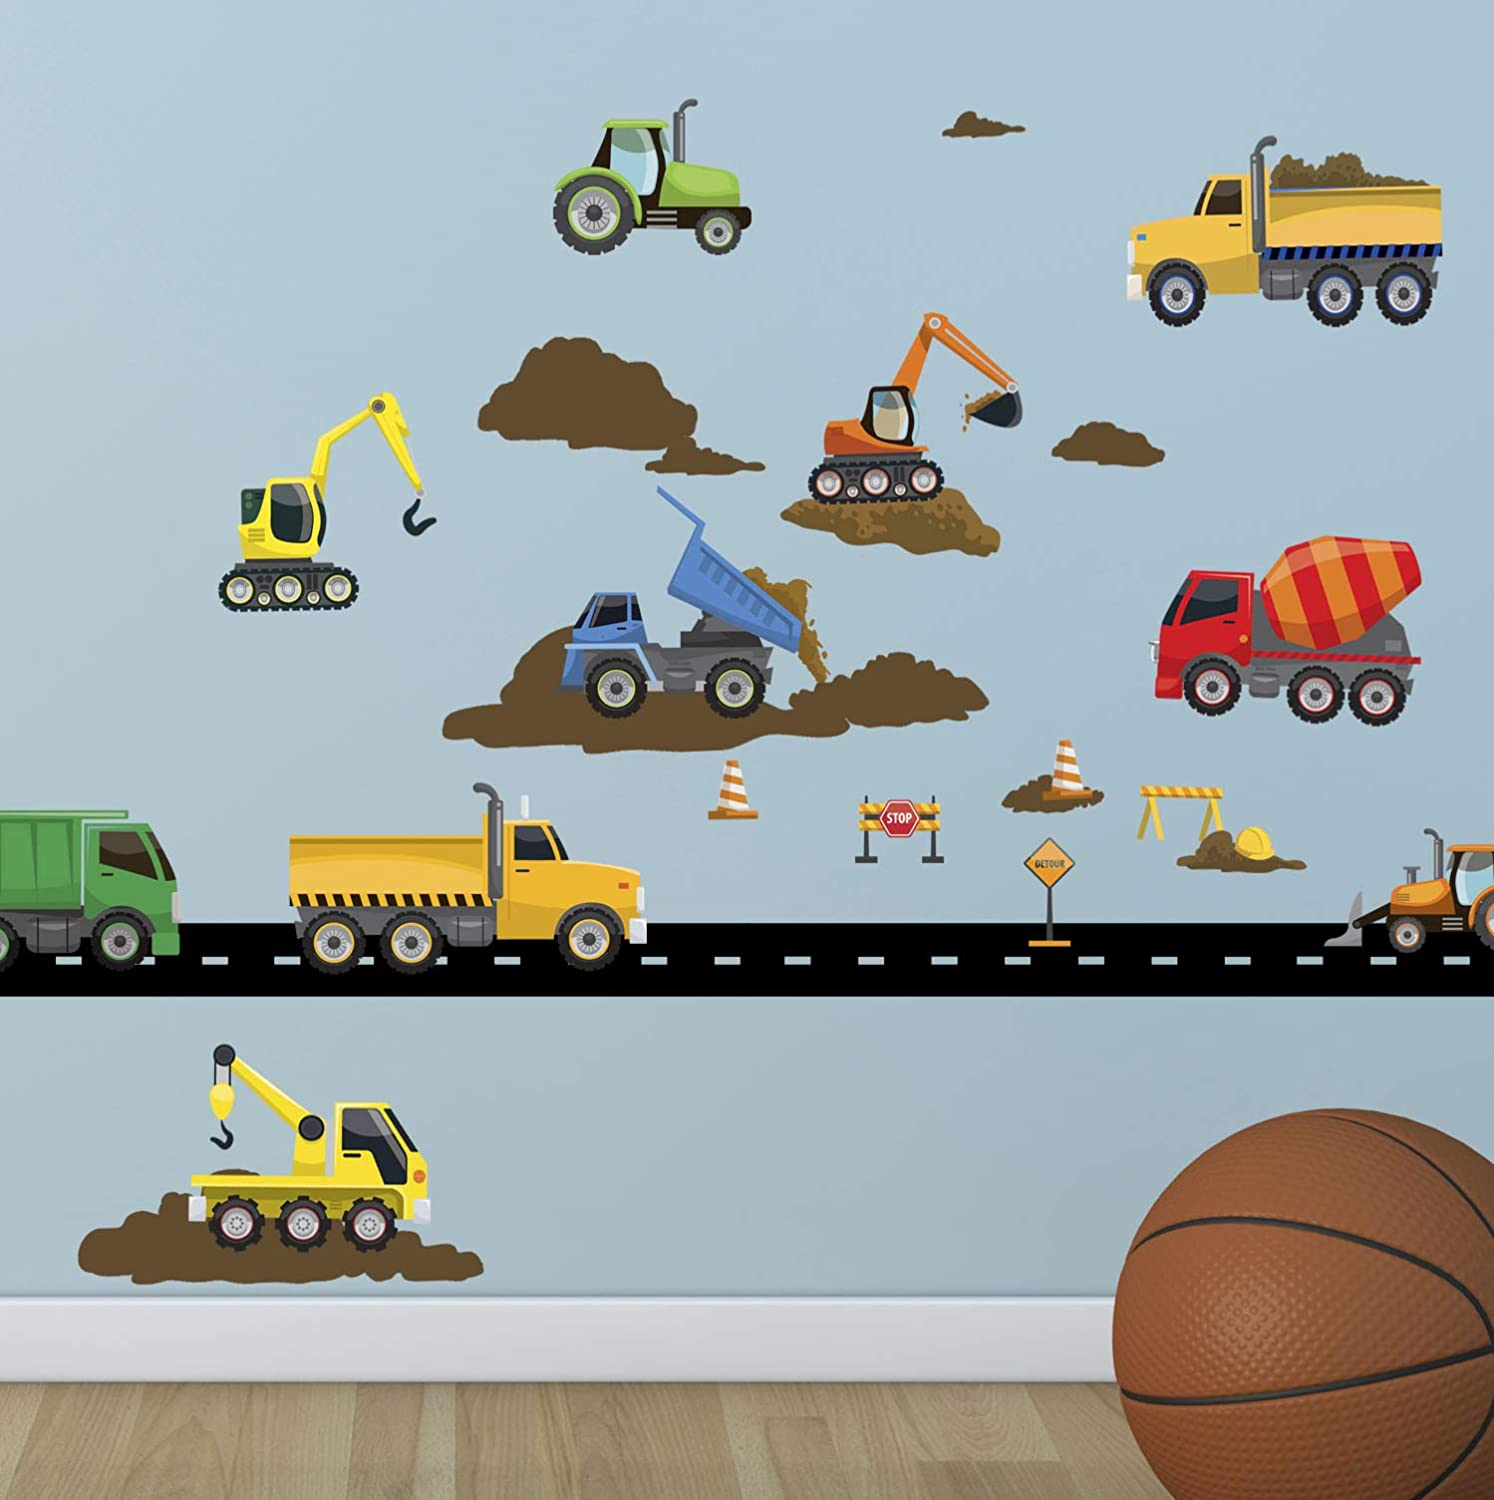 Create-A-Mural Trucks & Construction Vehicles Wall Decals Boys Wall Stickers, Vehicles Street Construction Scene Theme Room Vinyl Peel & Stick Bedroom Decor Toddlers Playroom Decoration Birthday Gift